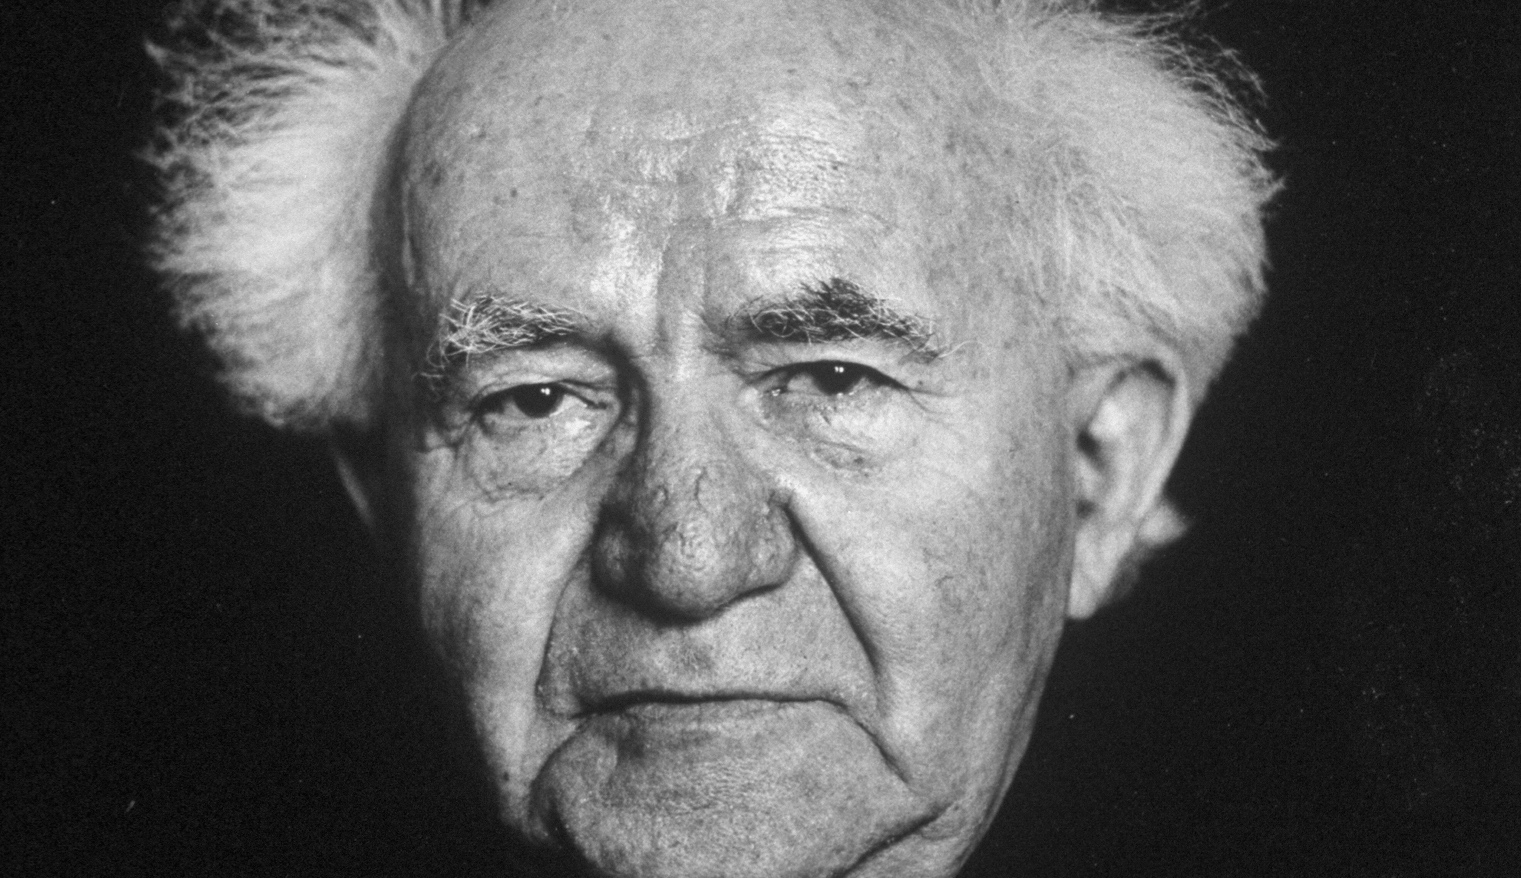 A portrait of David Ben-Gurion taken in the 1960s. Horst Tappe/Pix Inc./The LIFE Images Collection/Getty Images.